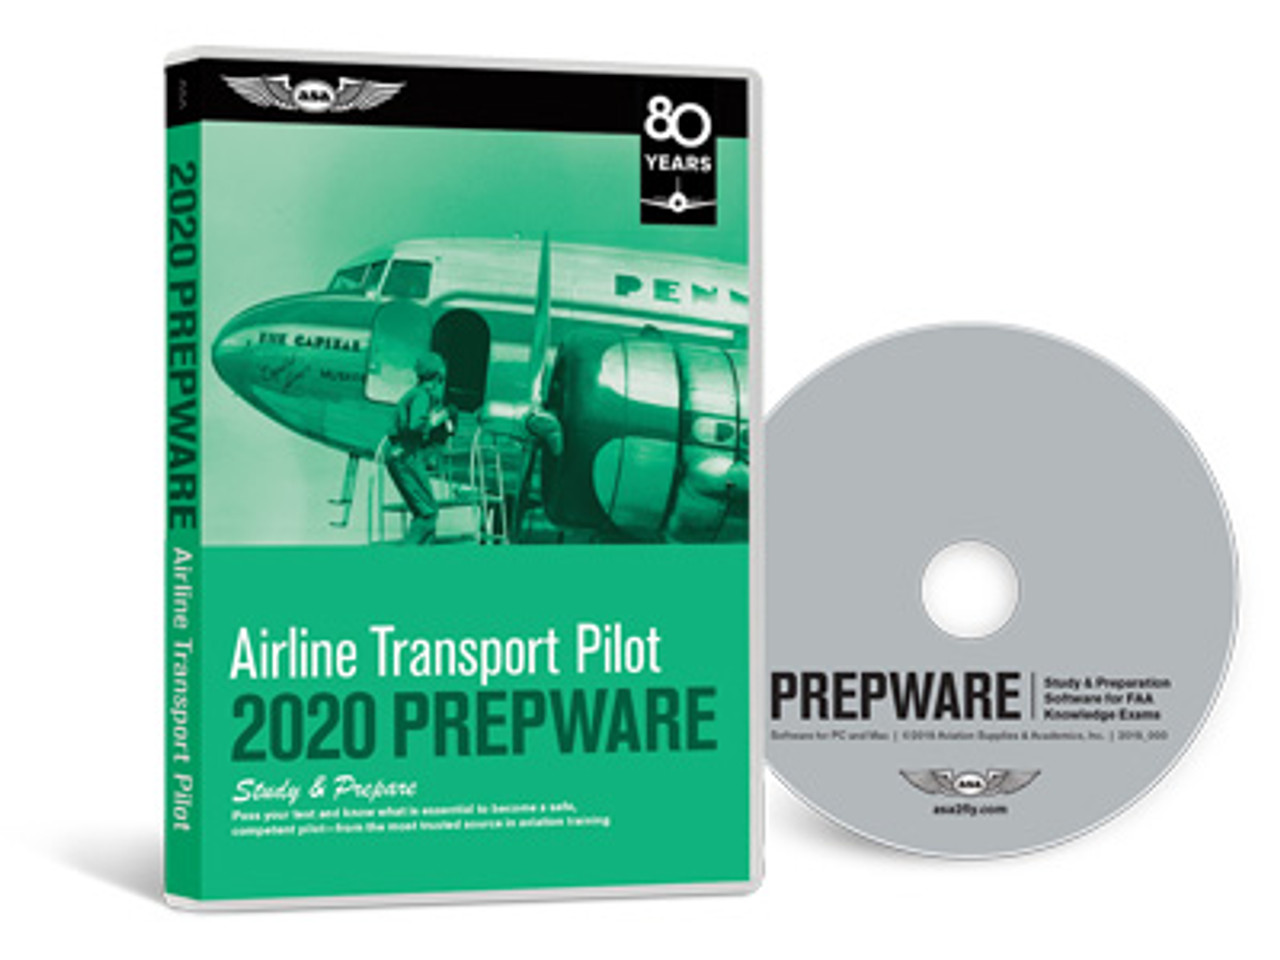 ASA Prepware 2020: Airline Transport Pilot & Flight Engineer